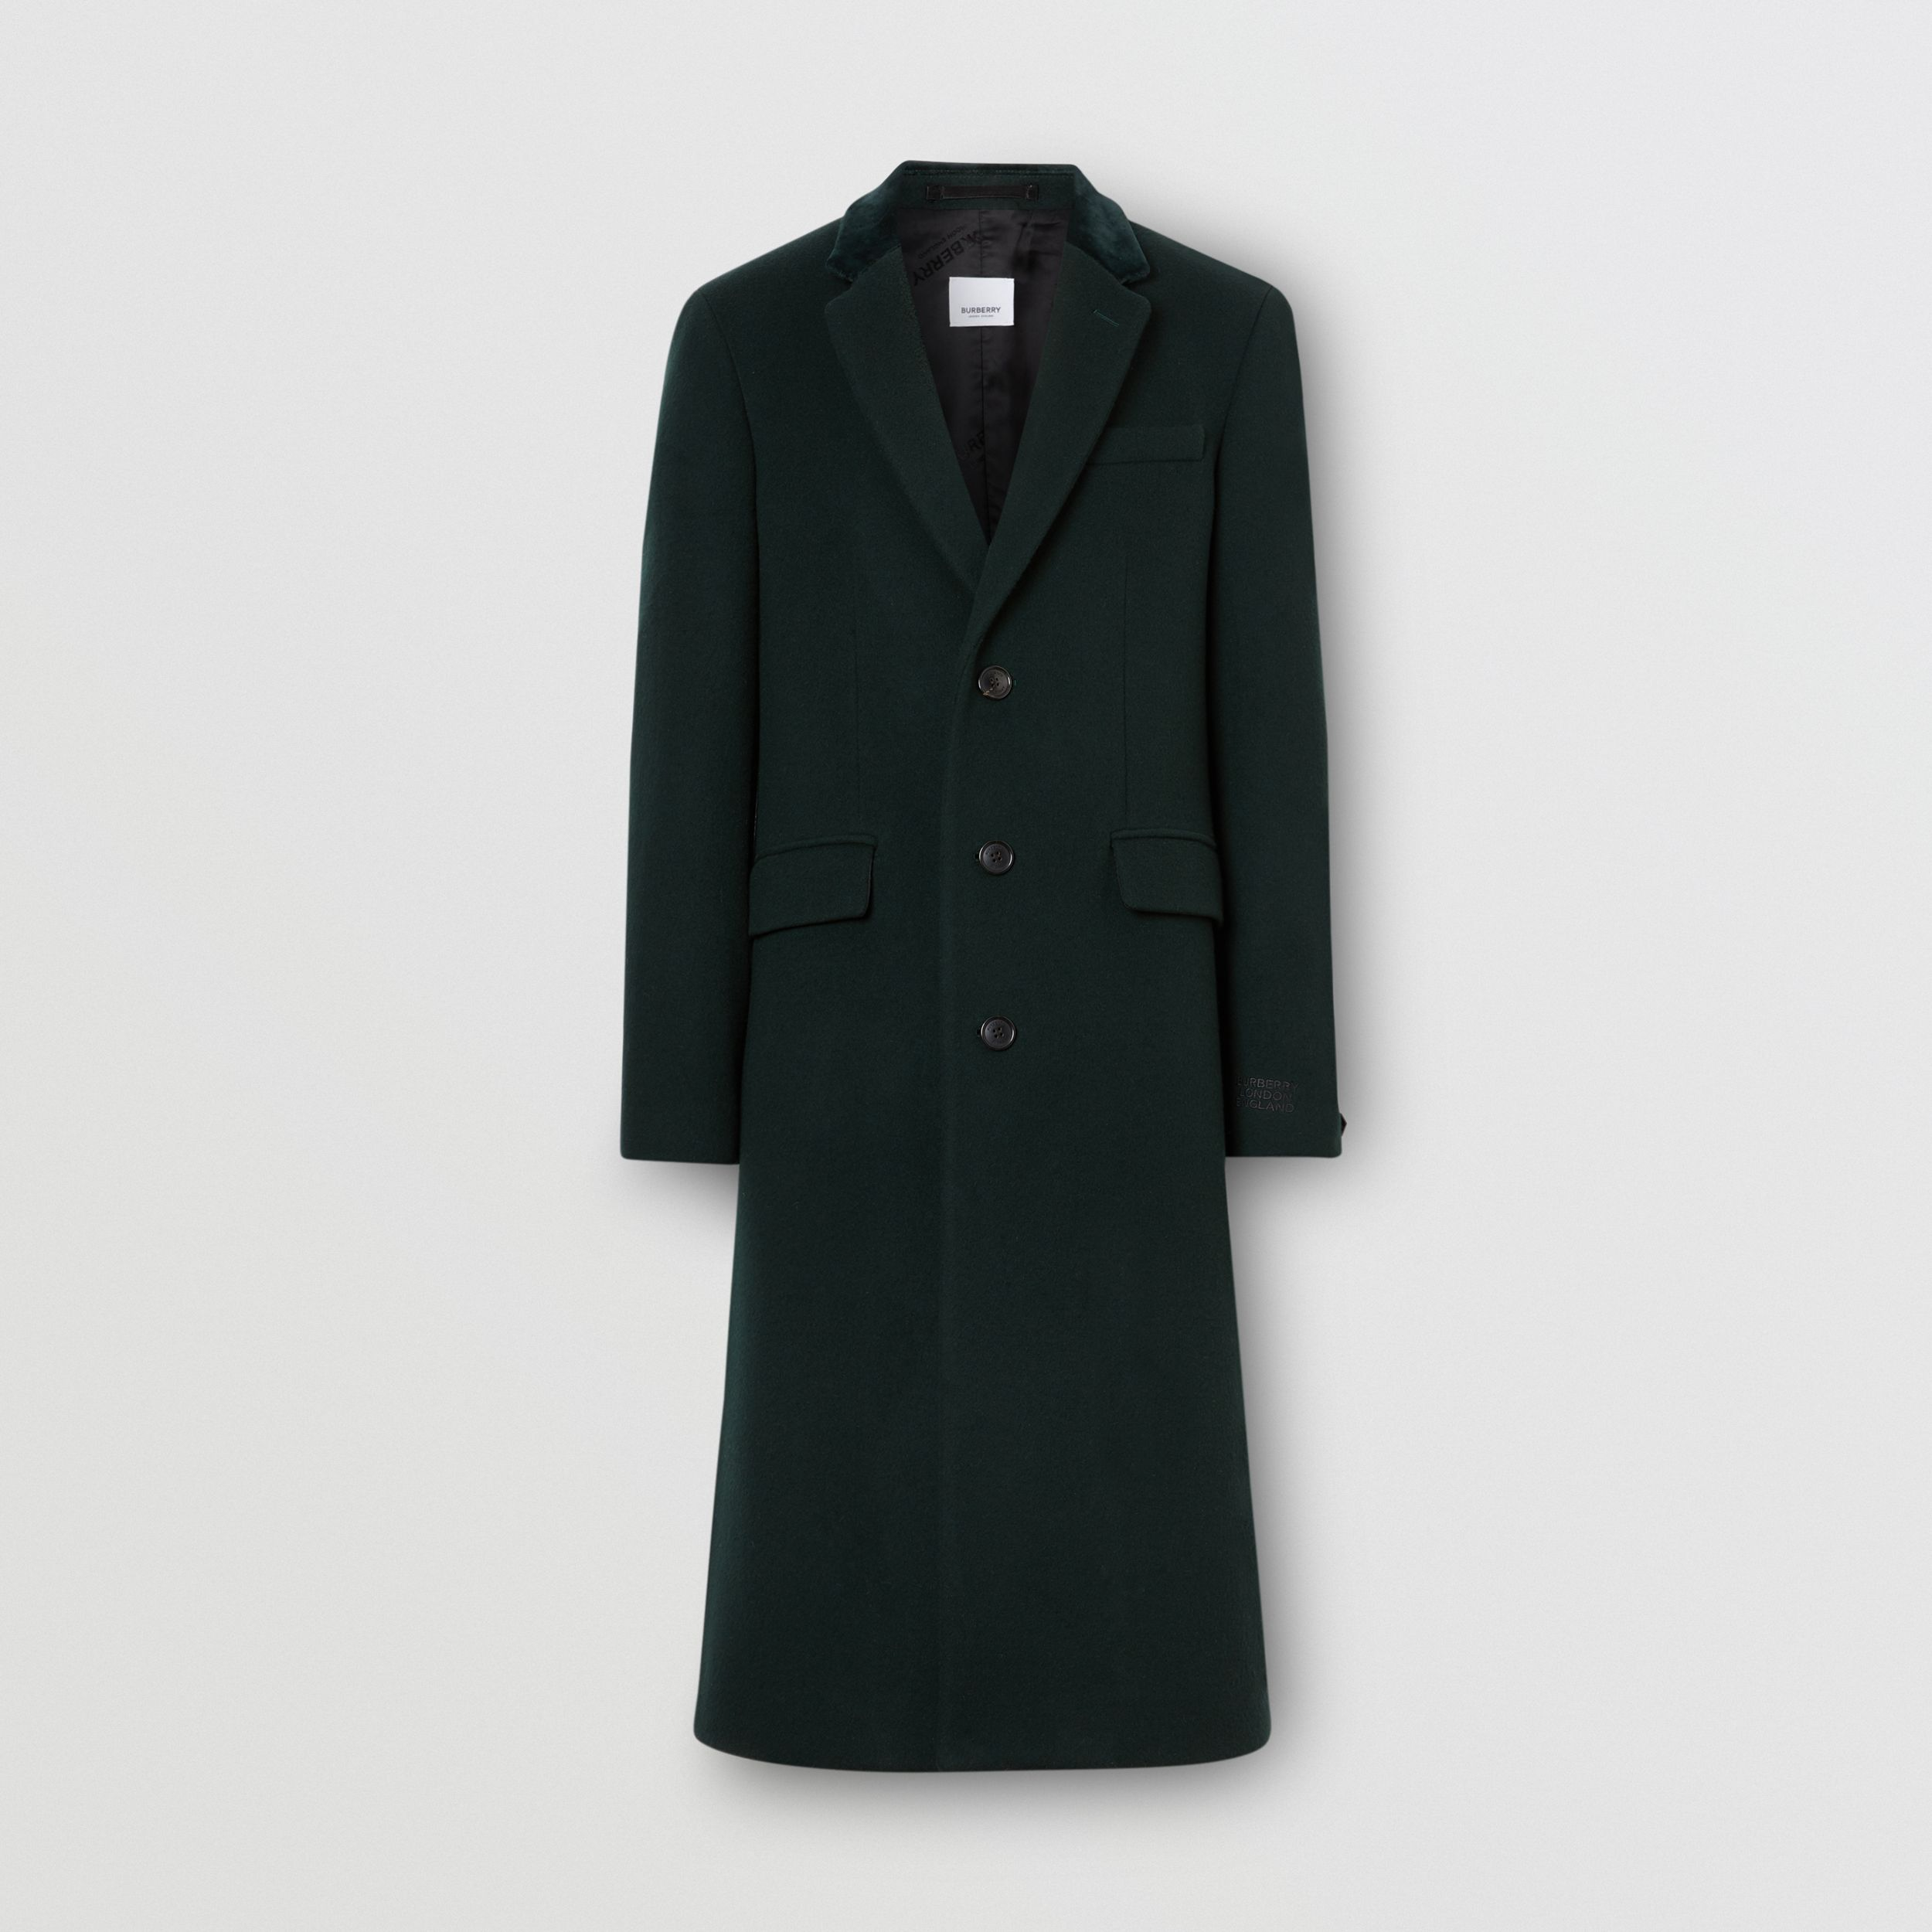 Velvet Trim Wool Cashmere Tailored Coat in Dark Pine Green - Men | Burberry - 4